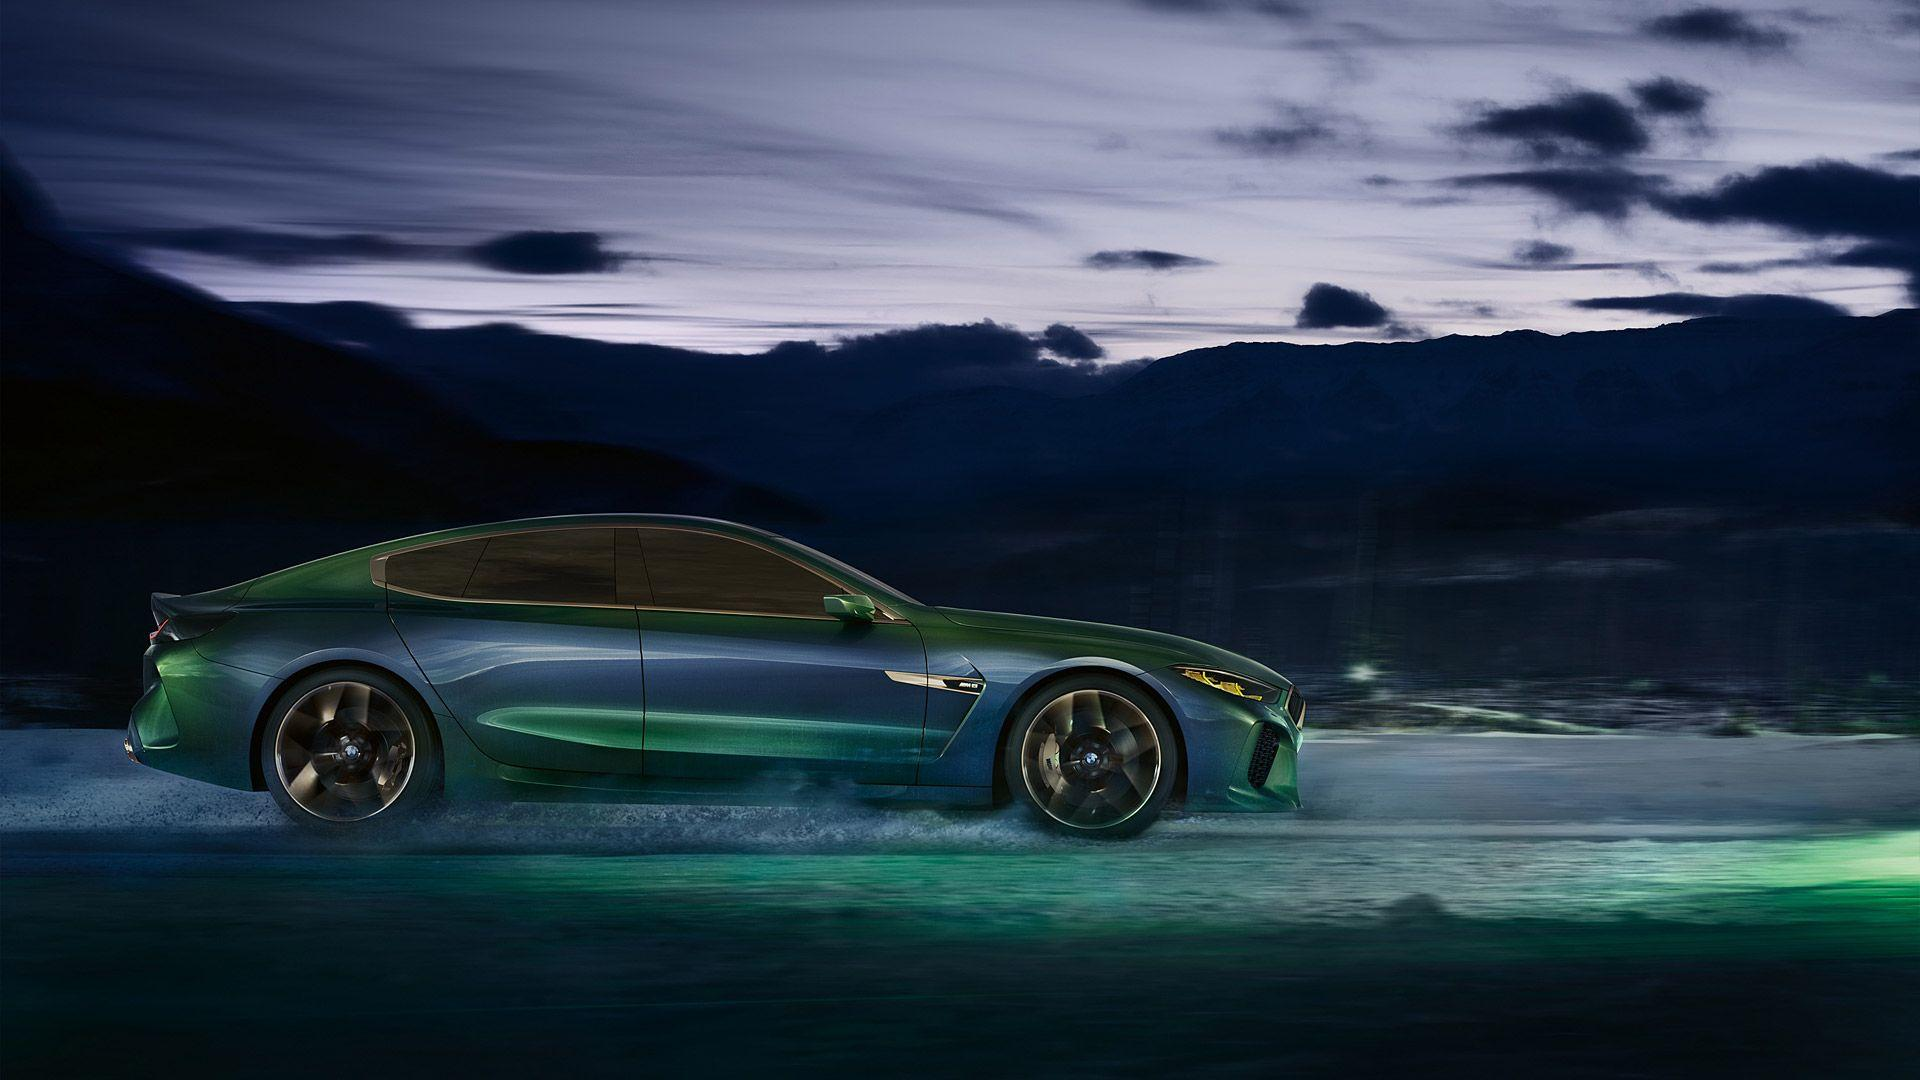 2018 BMW M8 Gran Coupe Concept Wallpapers & HD Image